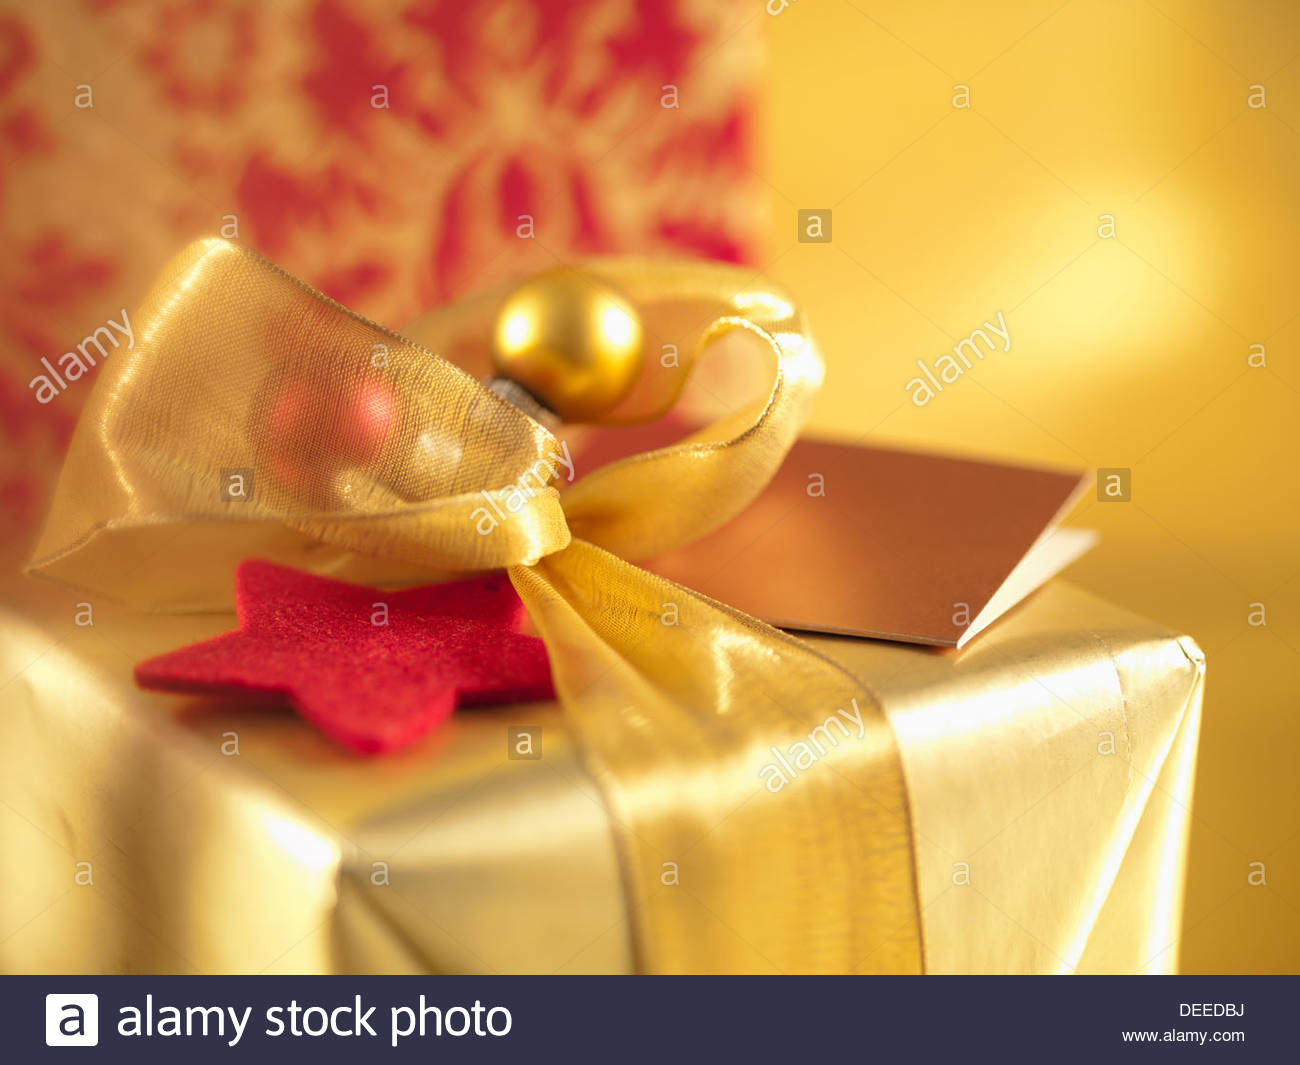 Christmas gifts with gold ribbons - Stock Image